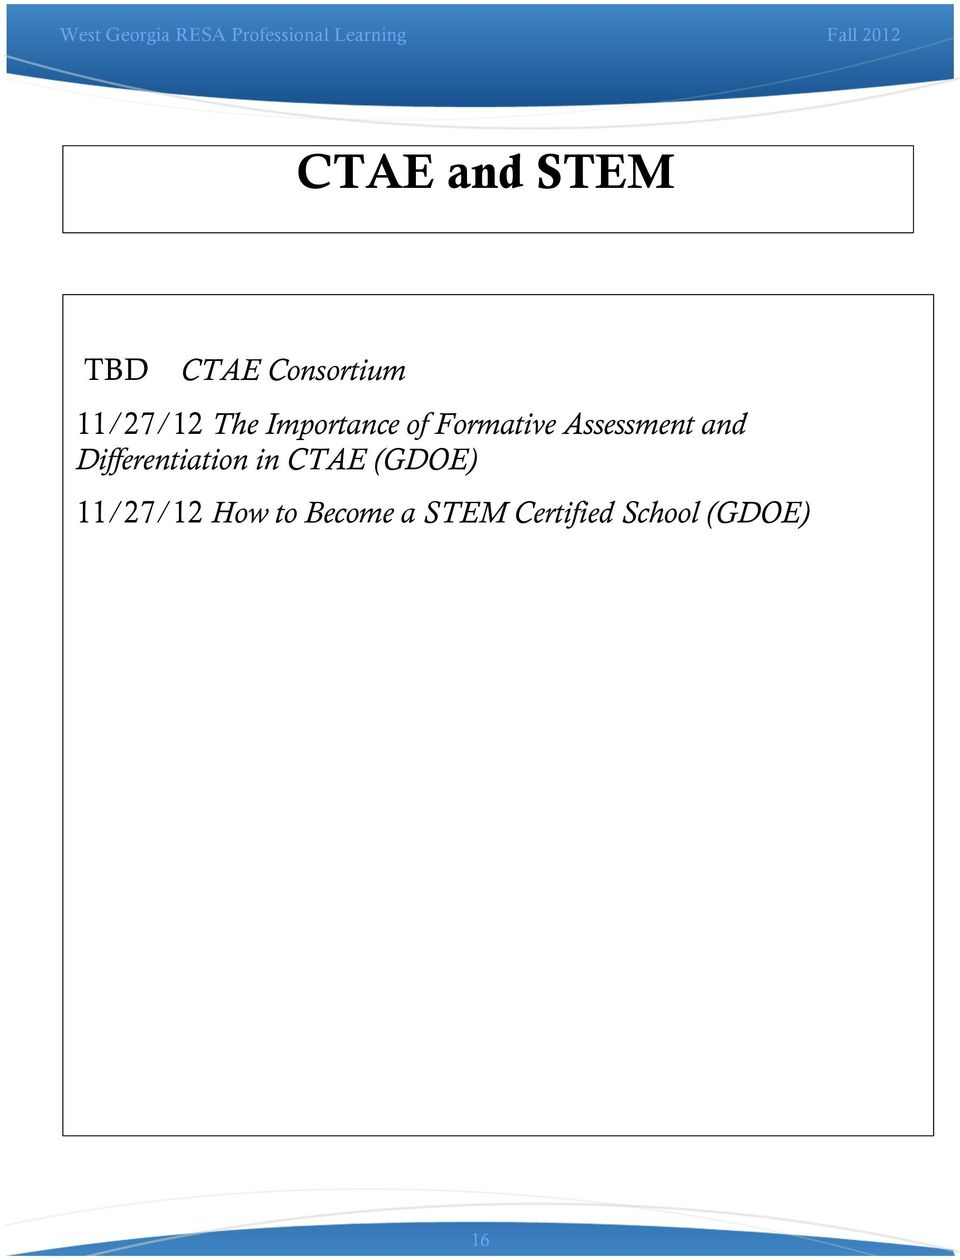 Differentiation in CTAE (GDOE) 11/27/12 How